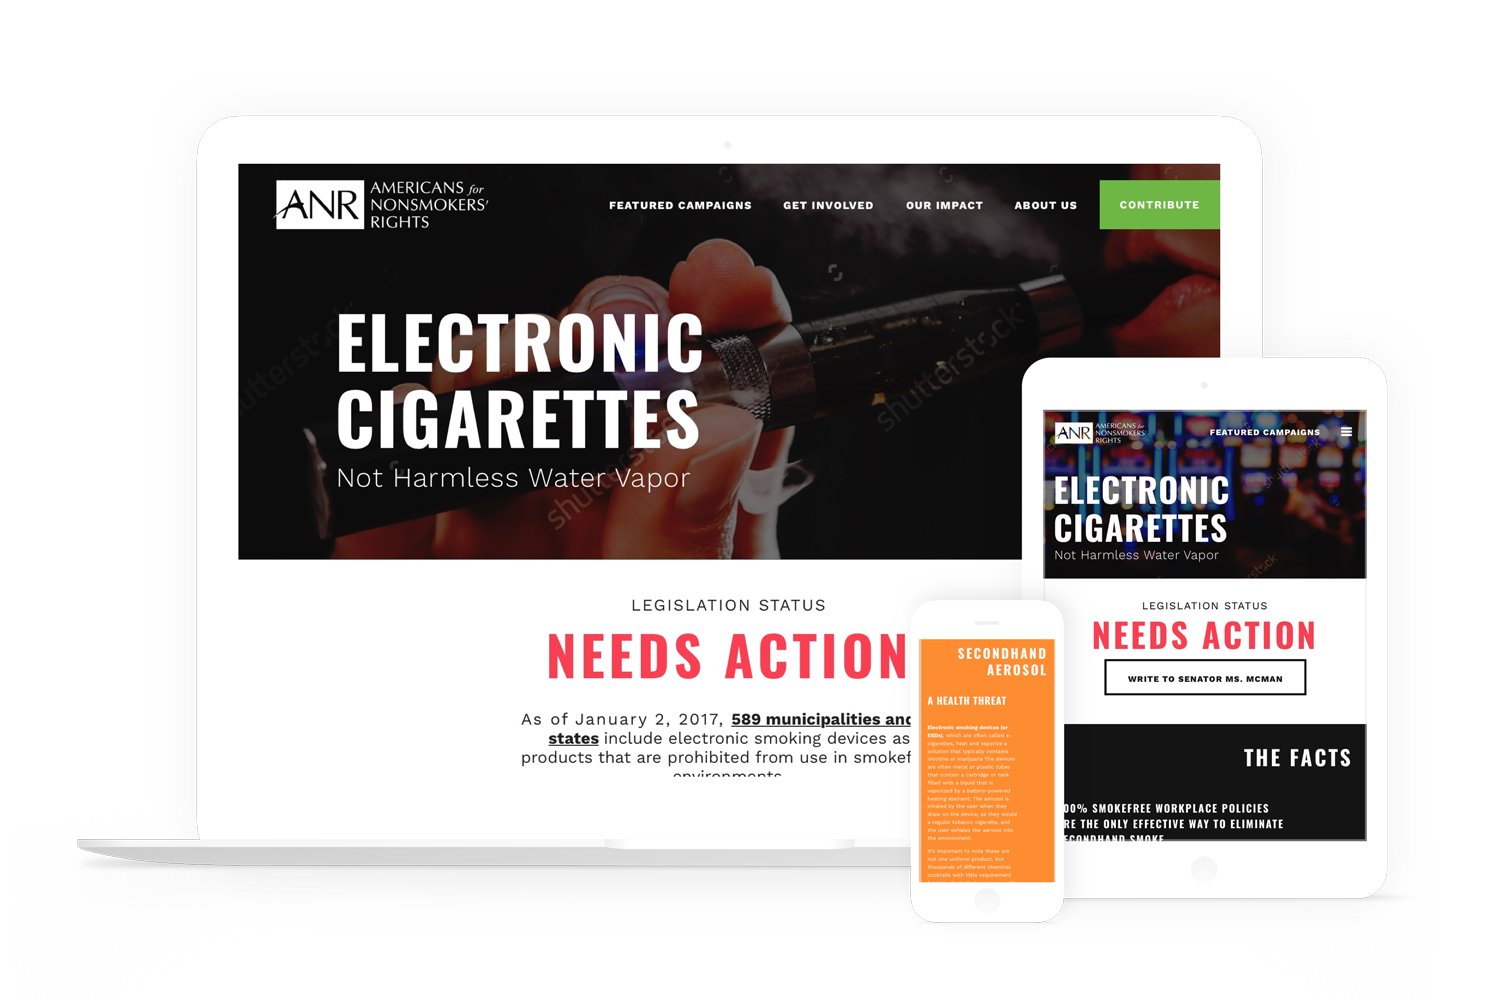 American for Nonsmokers' Rights displayed on a laptop, a tablet, and a phone.